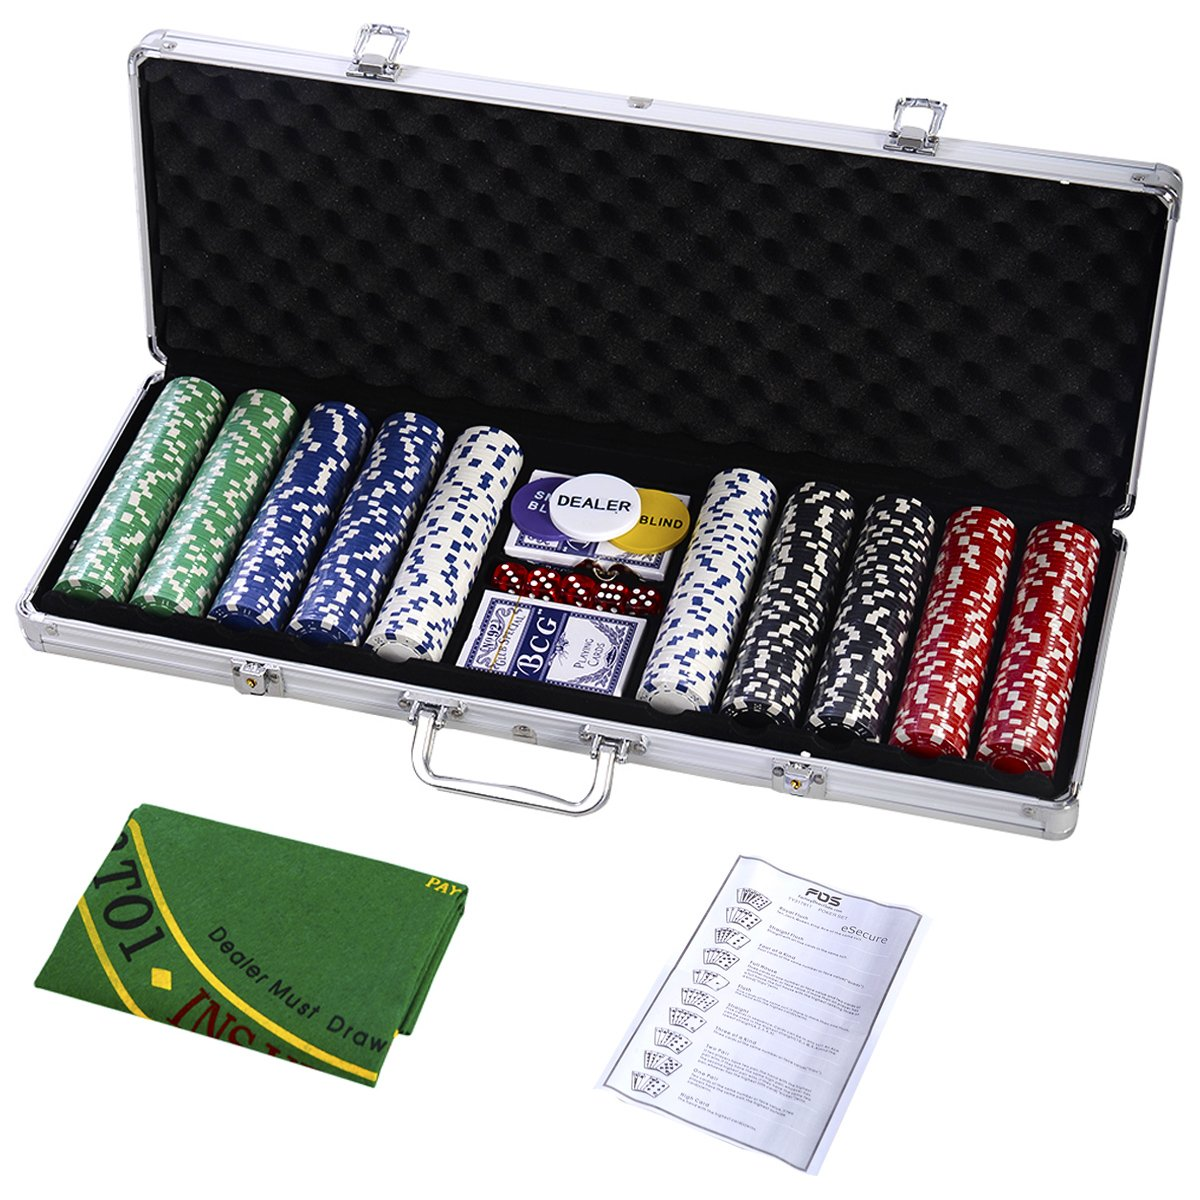 Goplus 500 Chips Poker Dice Chip Set 11.5 Grams Texas Hold'em Cards w/Silver Aluminum Case & Placemat